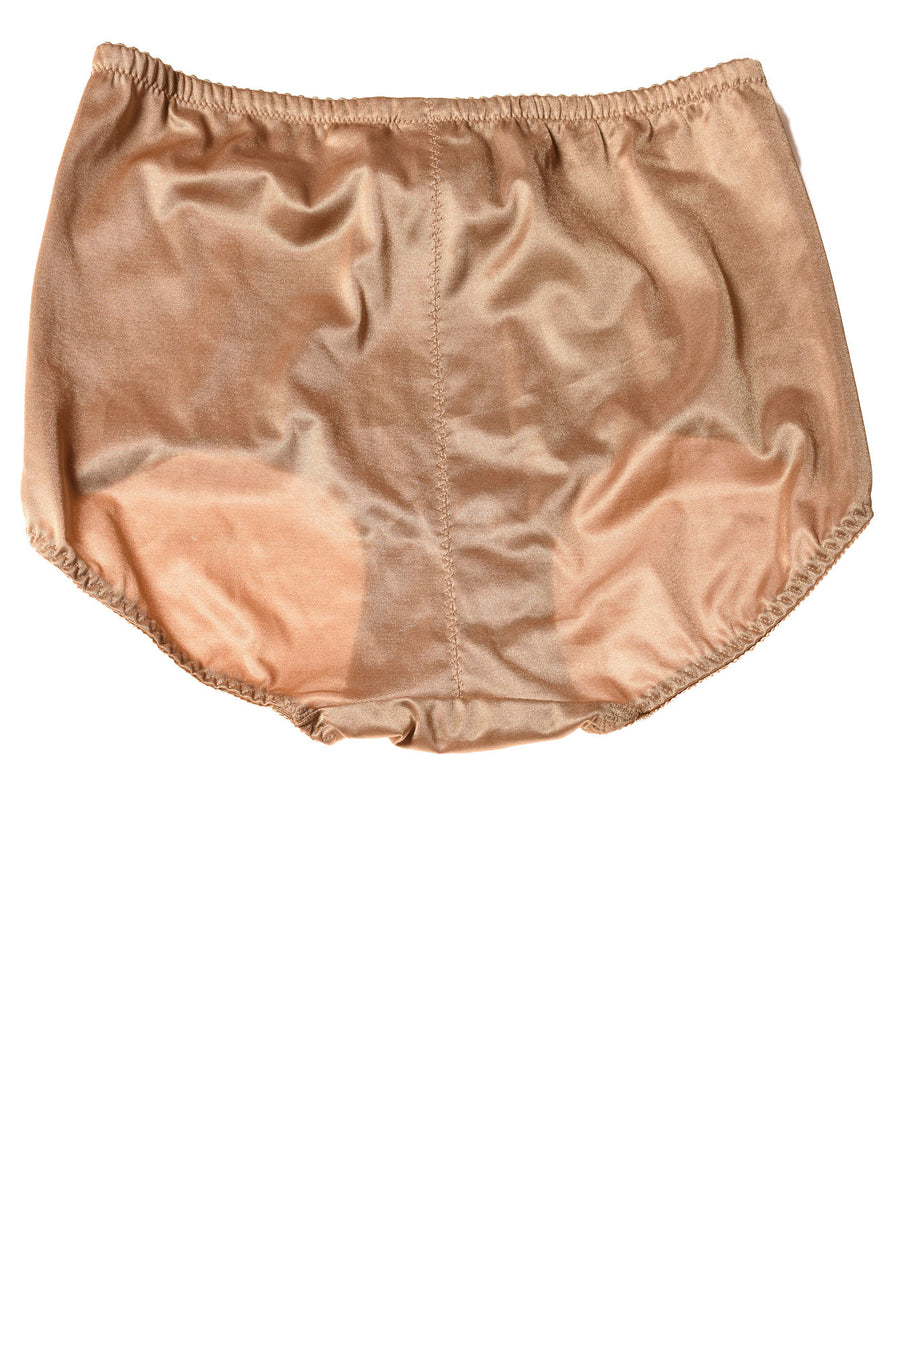 NEW Teri Women's Panties X-Large Gold